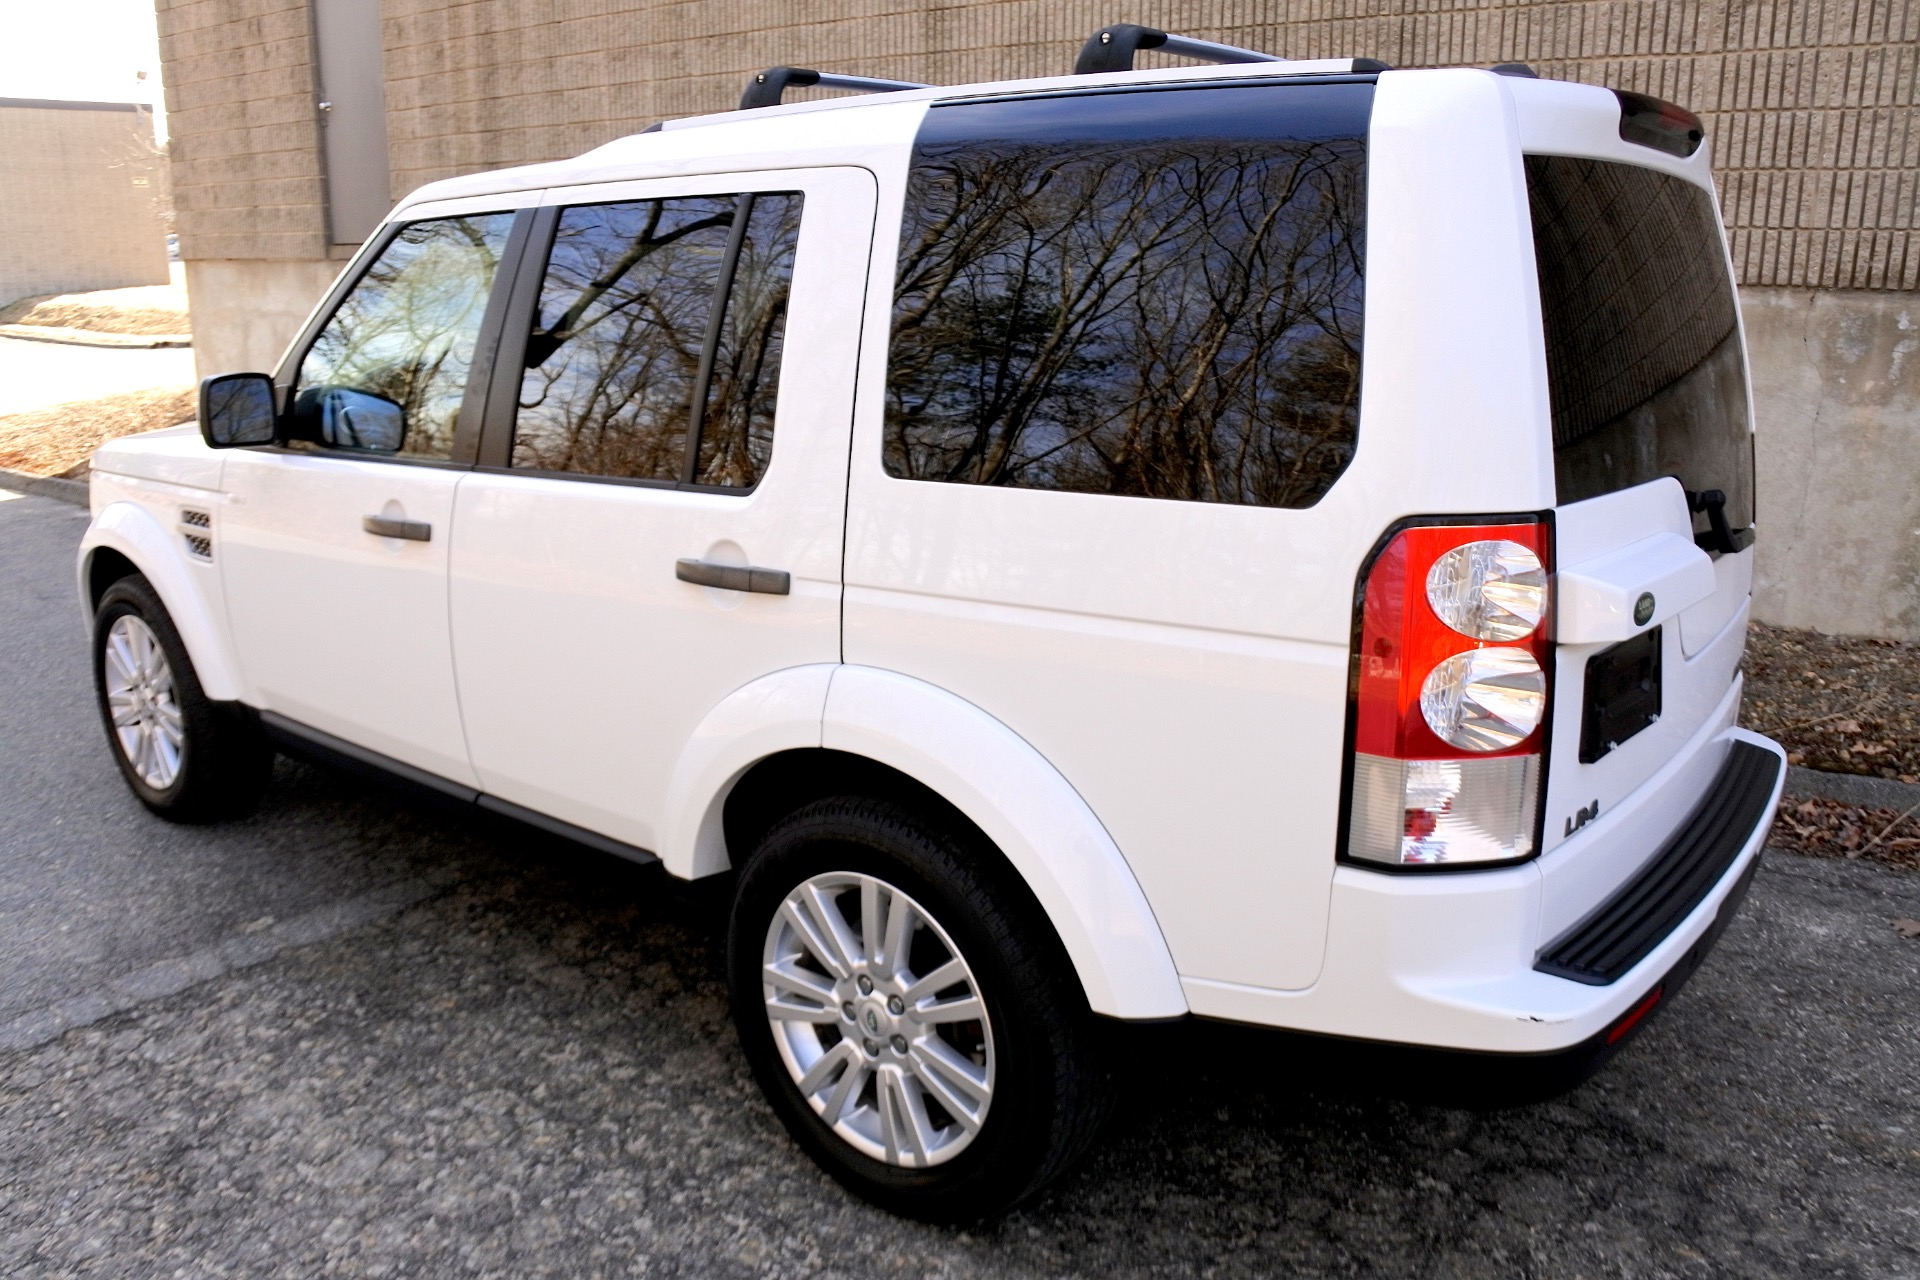 Used 2011 Land Rover Lr4 4WD 4dr V8 HSE Used 2011 Land Rover Lr4 4WD 4dr V8 HSE for sale  at Metro West Motorcars LLC in Shrewsbury MA 3